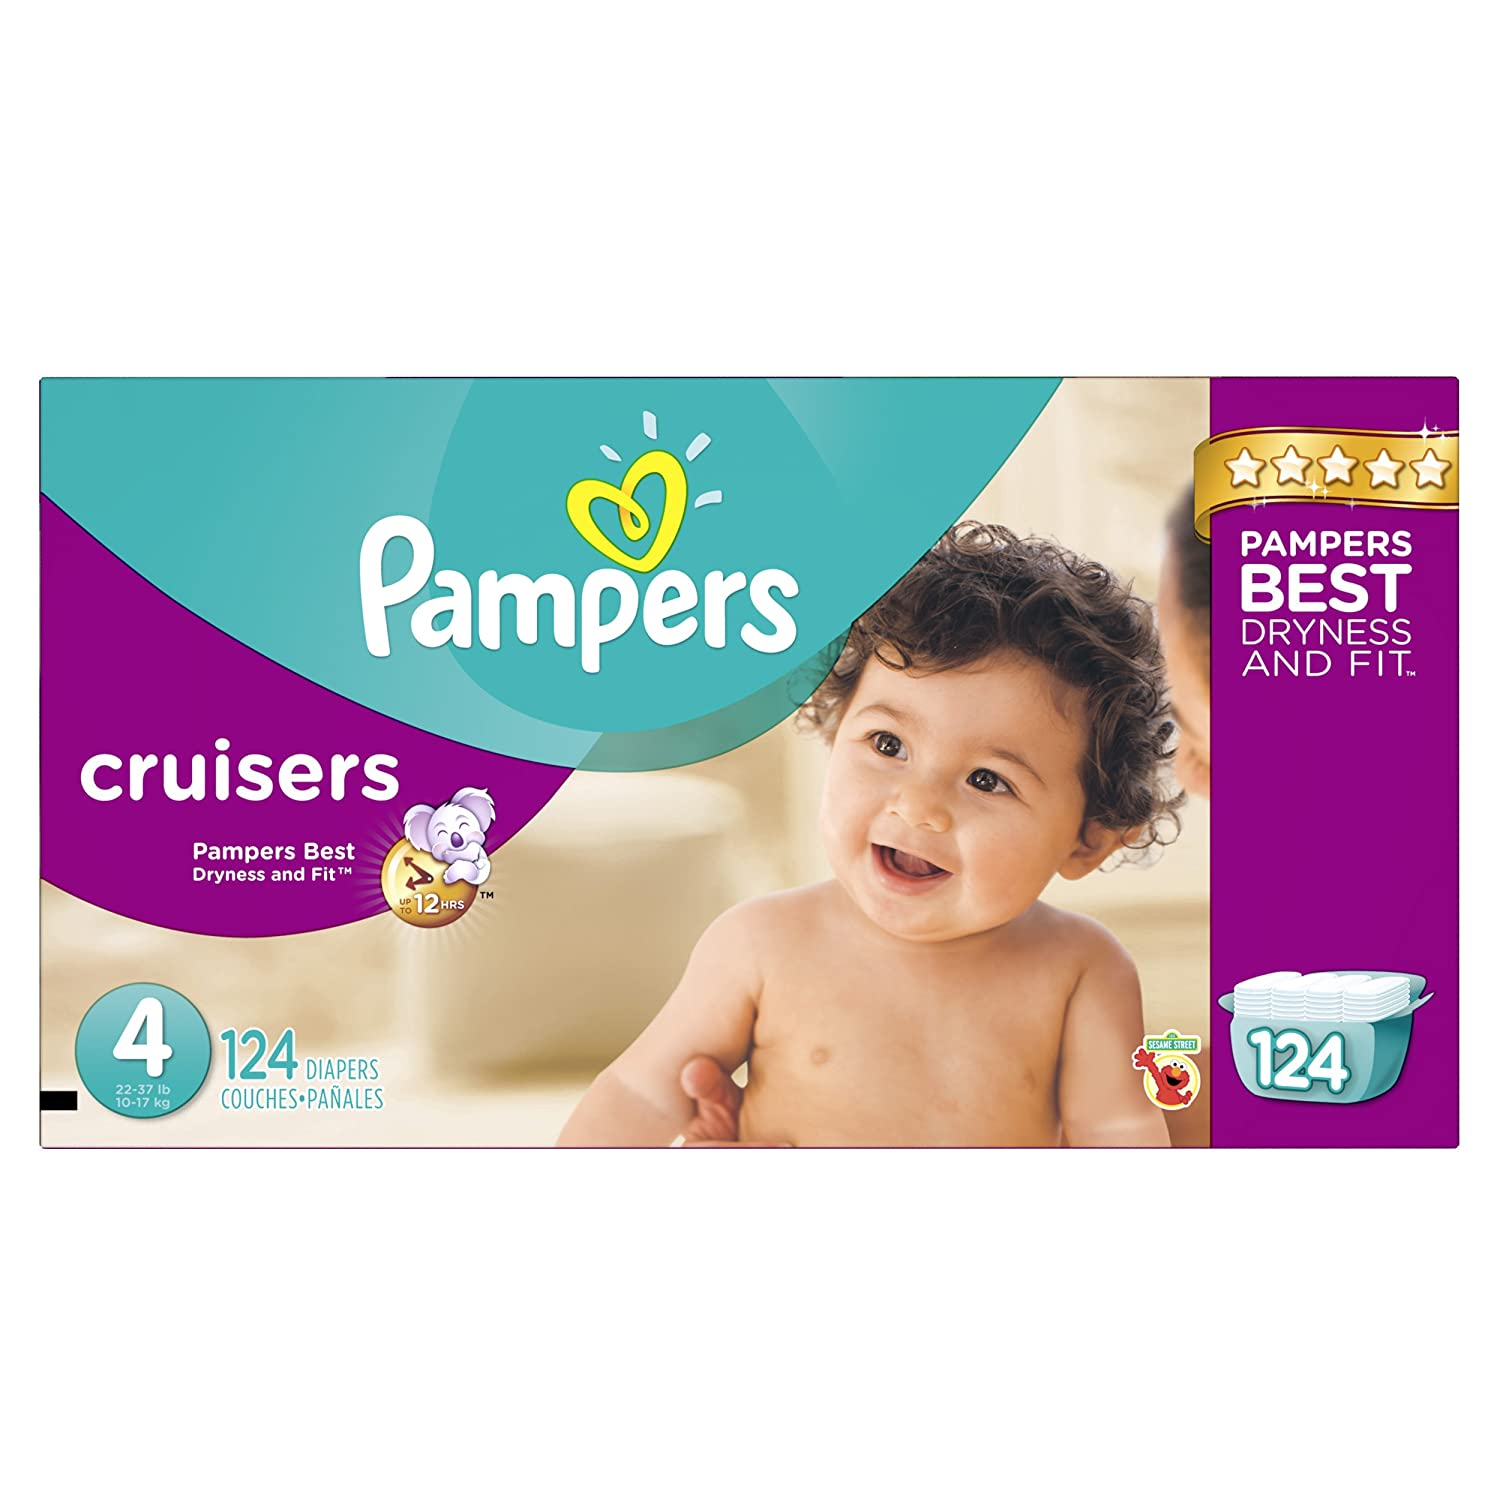 Pampers Cruisers Disposable Baby Diapers Size 4, Economy Pack, 124 Count (Packaging May Vary)